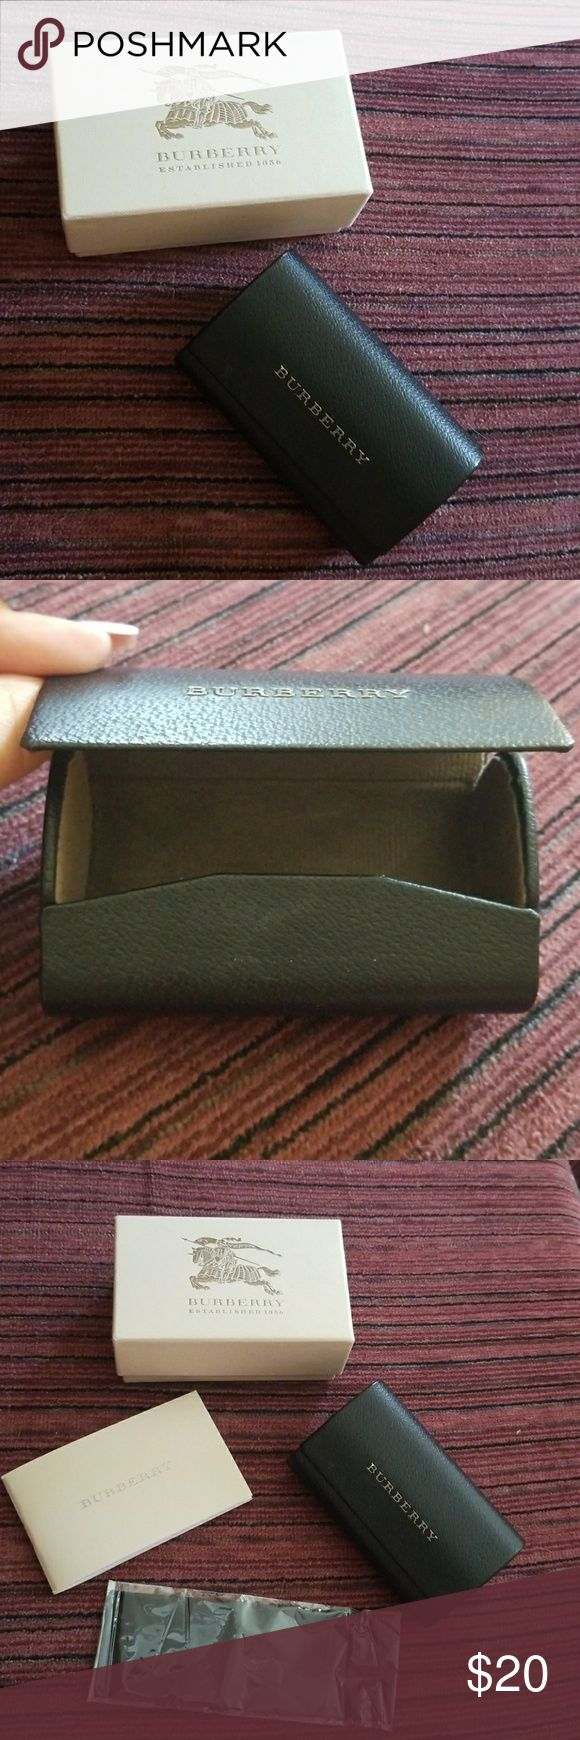 Burberry Sunglass Case Burberry Sunglass Case. (Sunglasses are not included). Comes with cloth, booklet, case and box. This case was for the sunglasses that FOLD- so it's smaller than your standard case. Please ask questions. Burberry Accessories Sunglasses